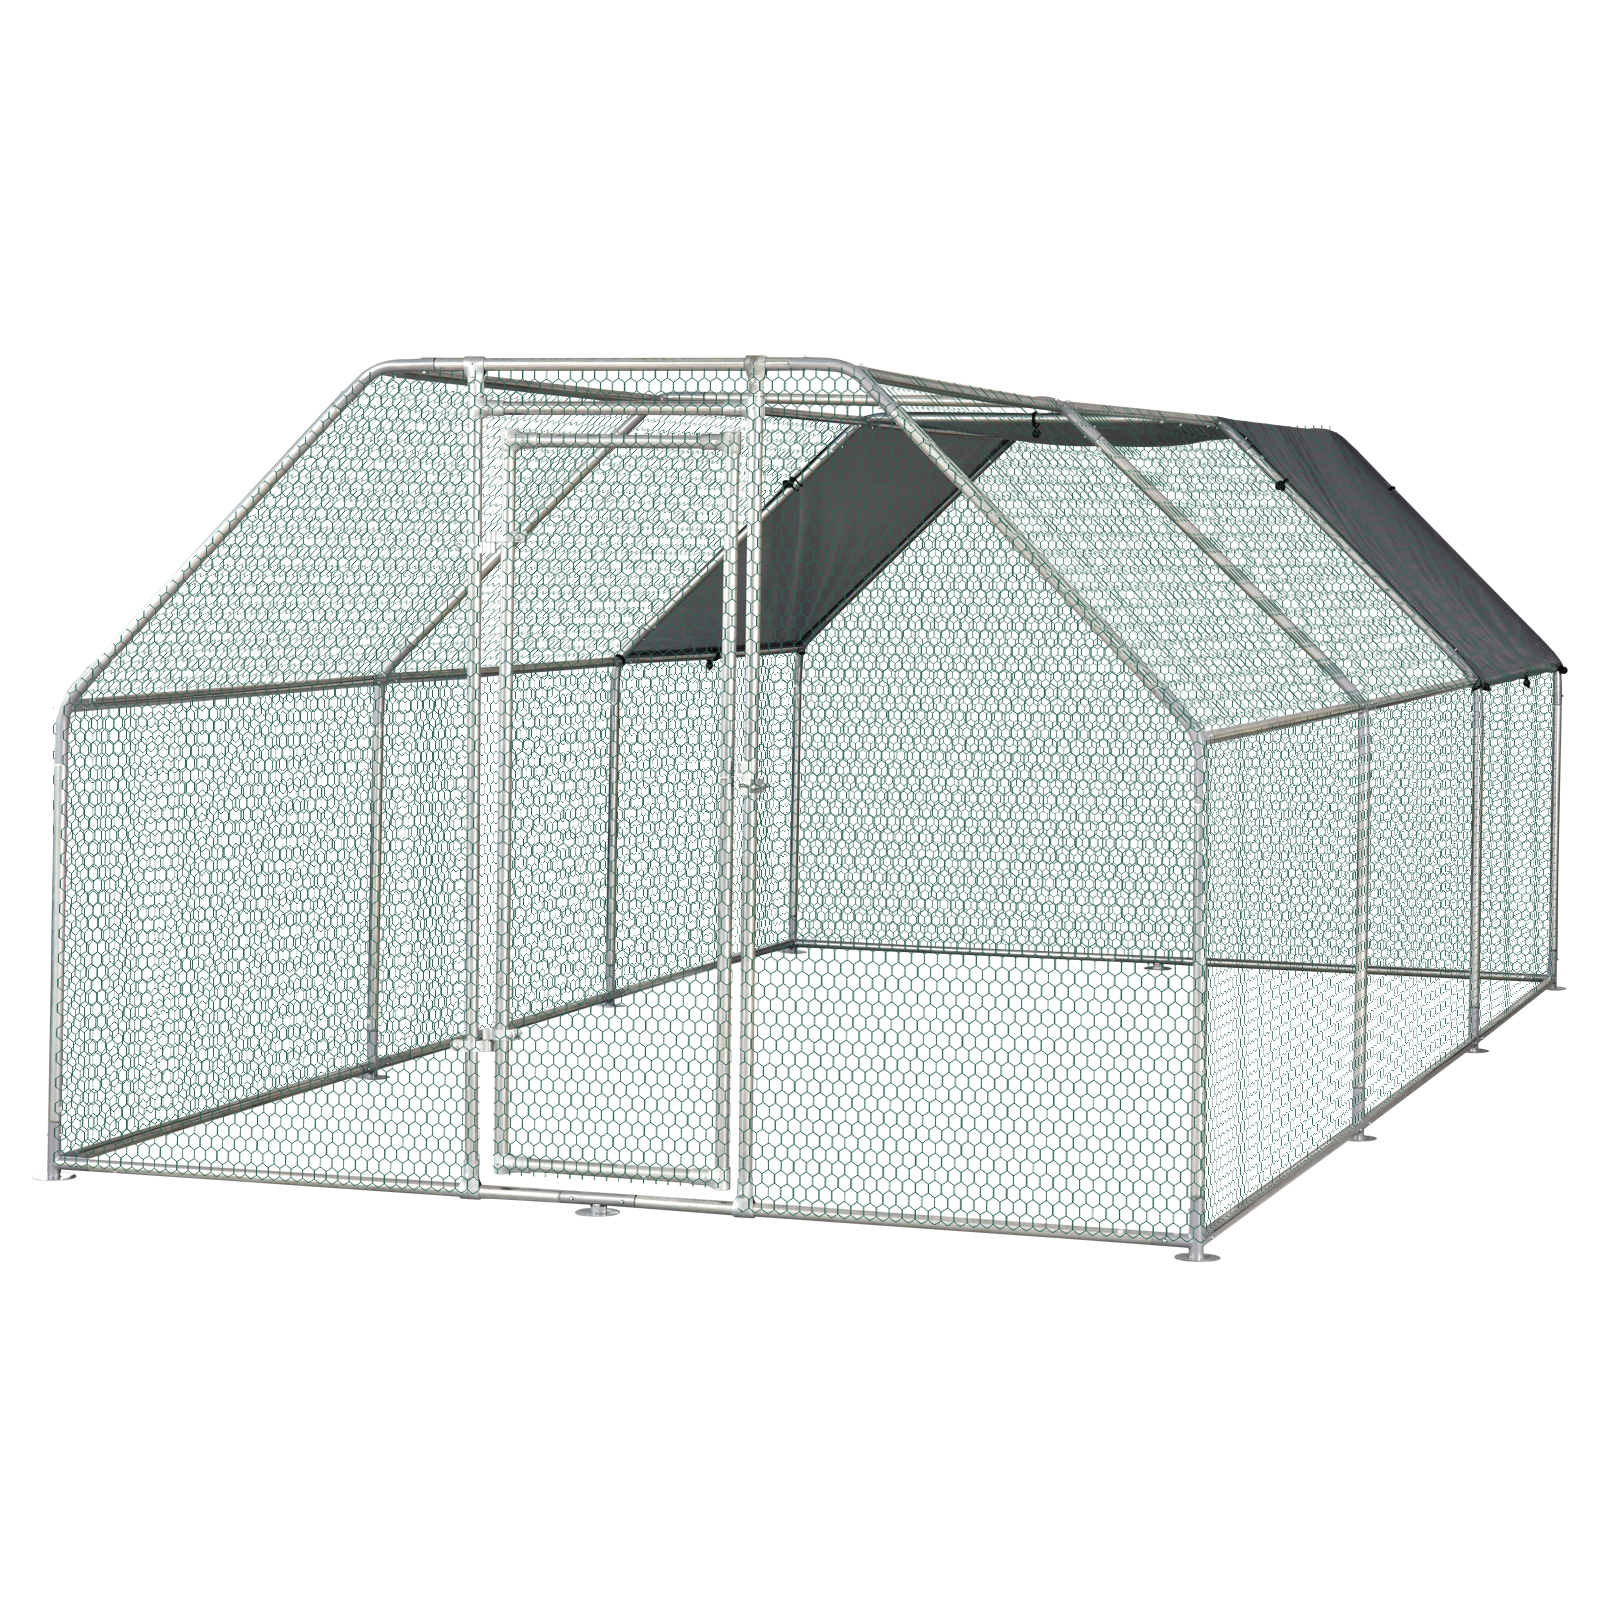 PawHut Galvanized Metal Chicken Coop Cage with Cover Walk-in Pen Run